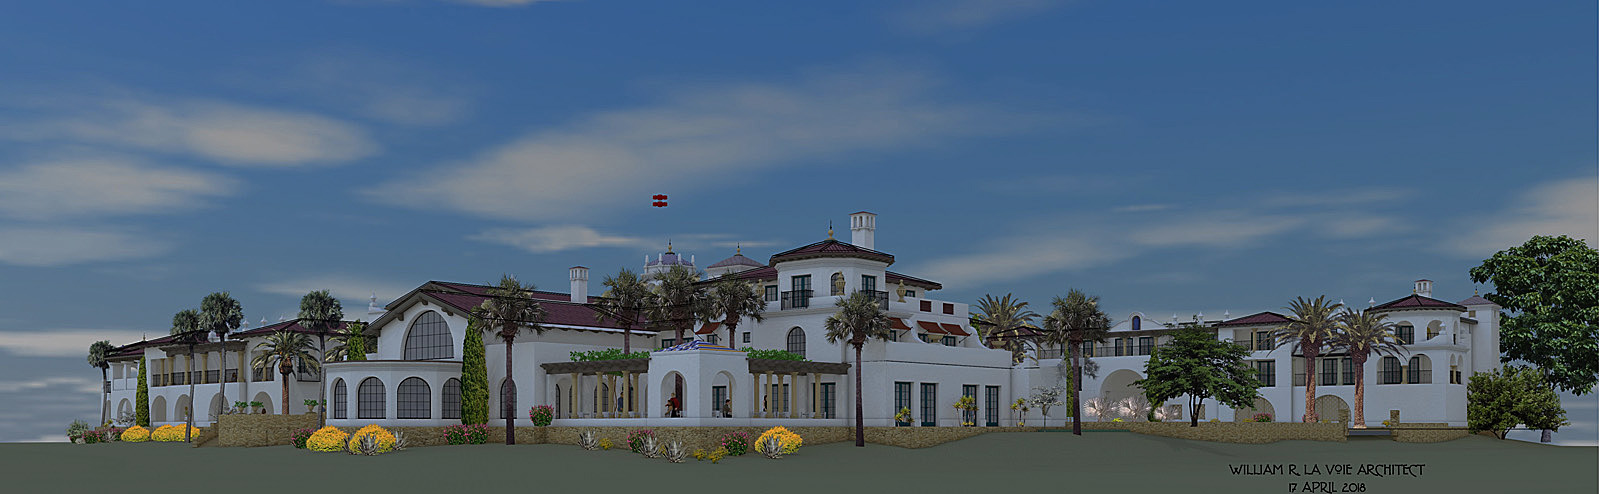 The proposed hotel for the Santa Barbara Waterfront 2018 -